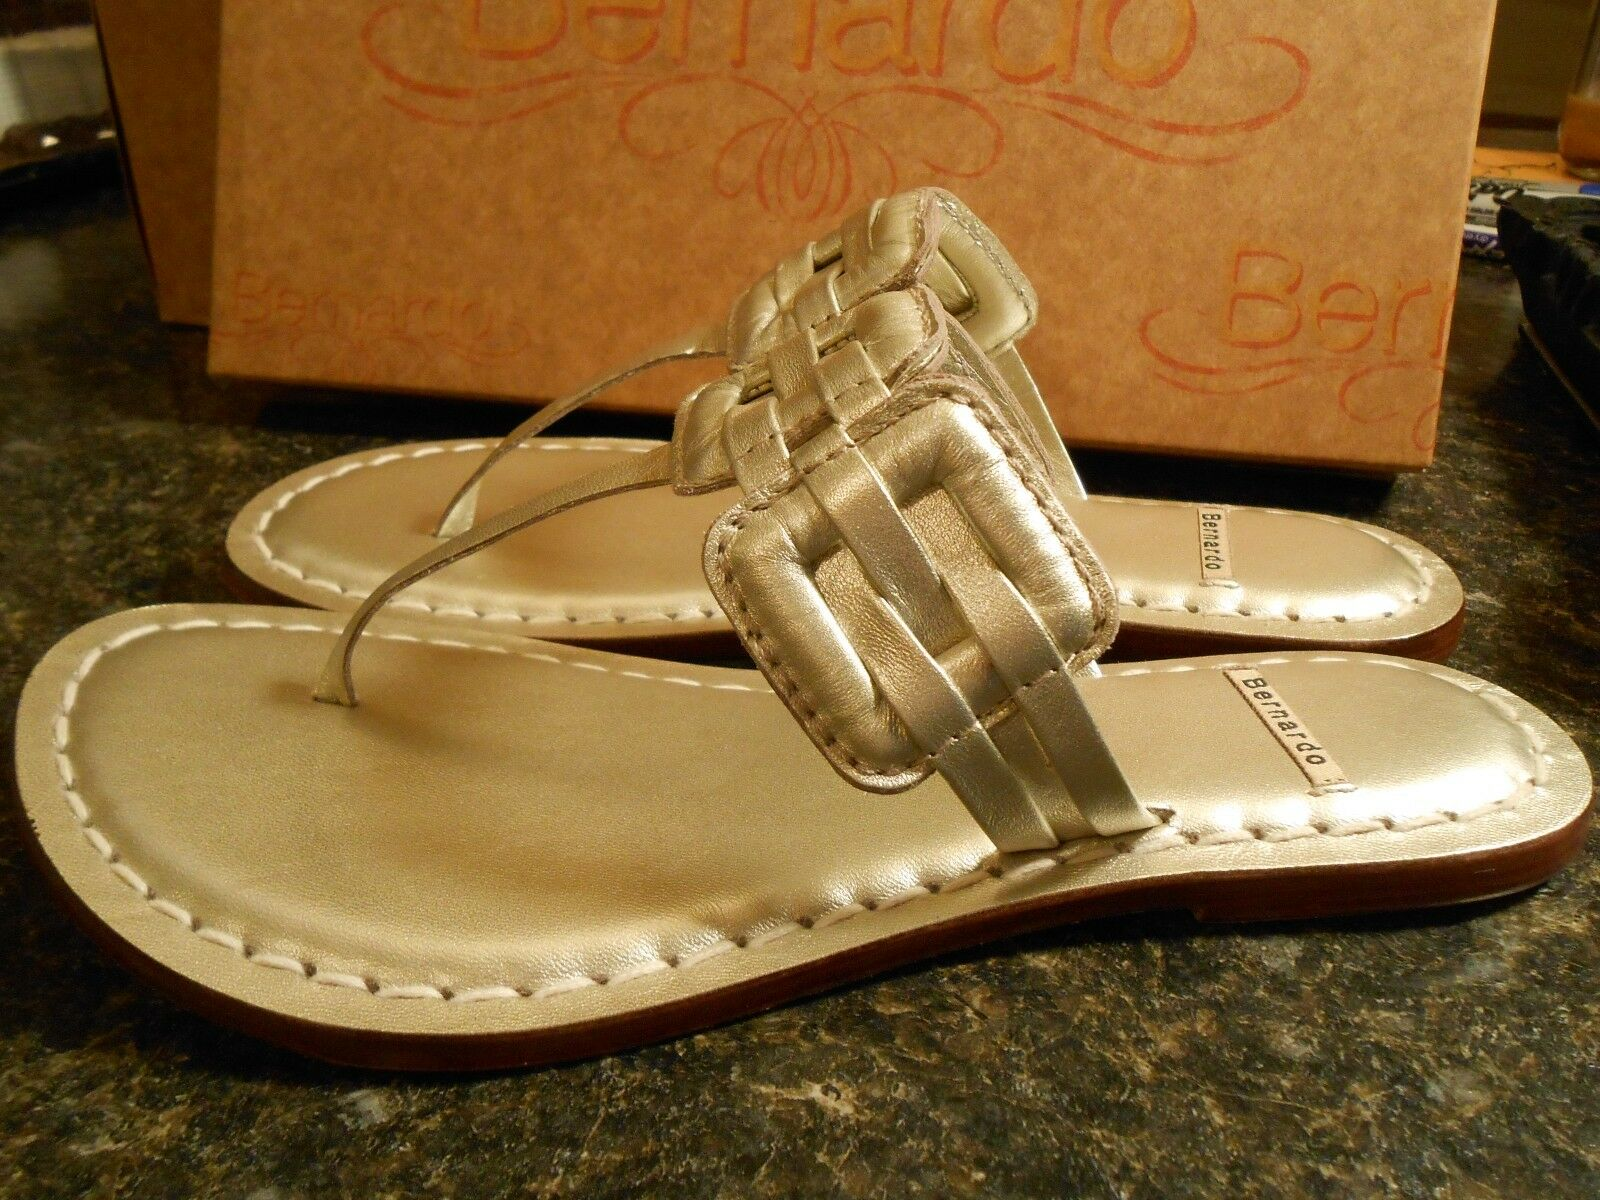 NEW Bernardo Maxine 6.5M Platinum thong sandals woven woven sandals leather metallic 6170c2